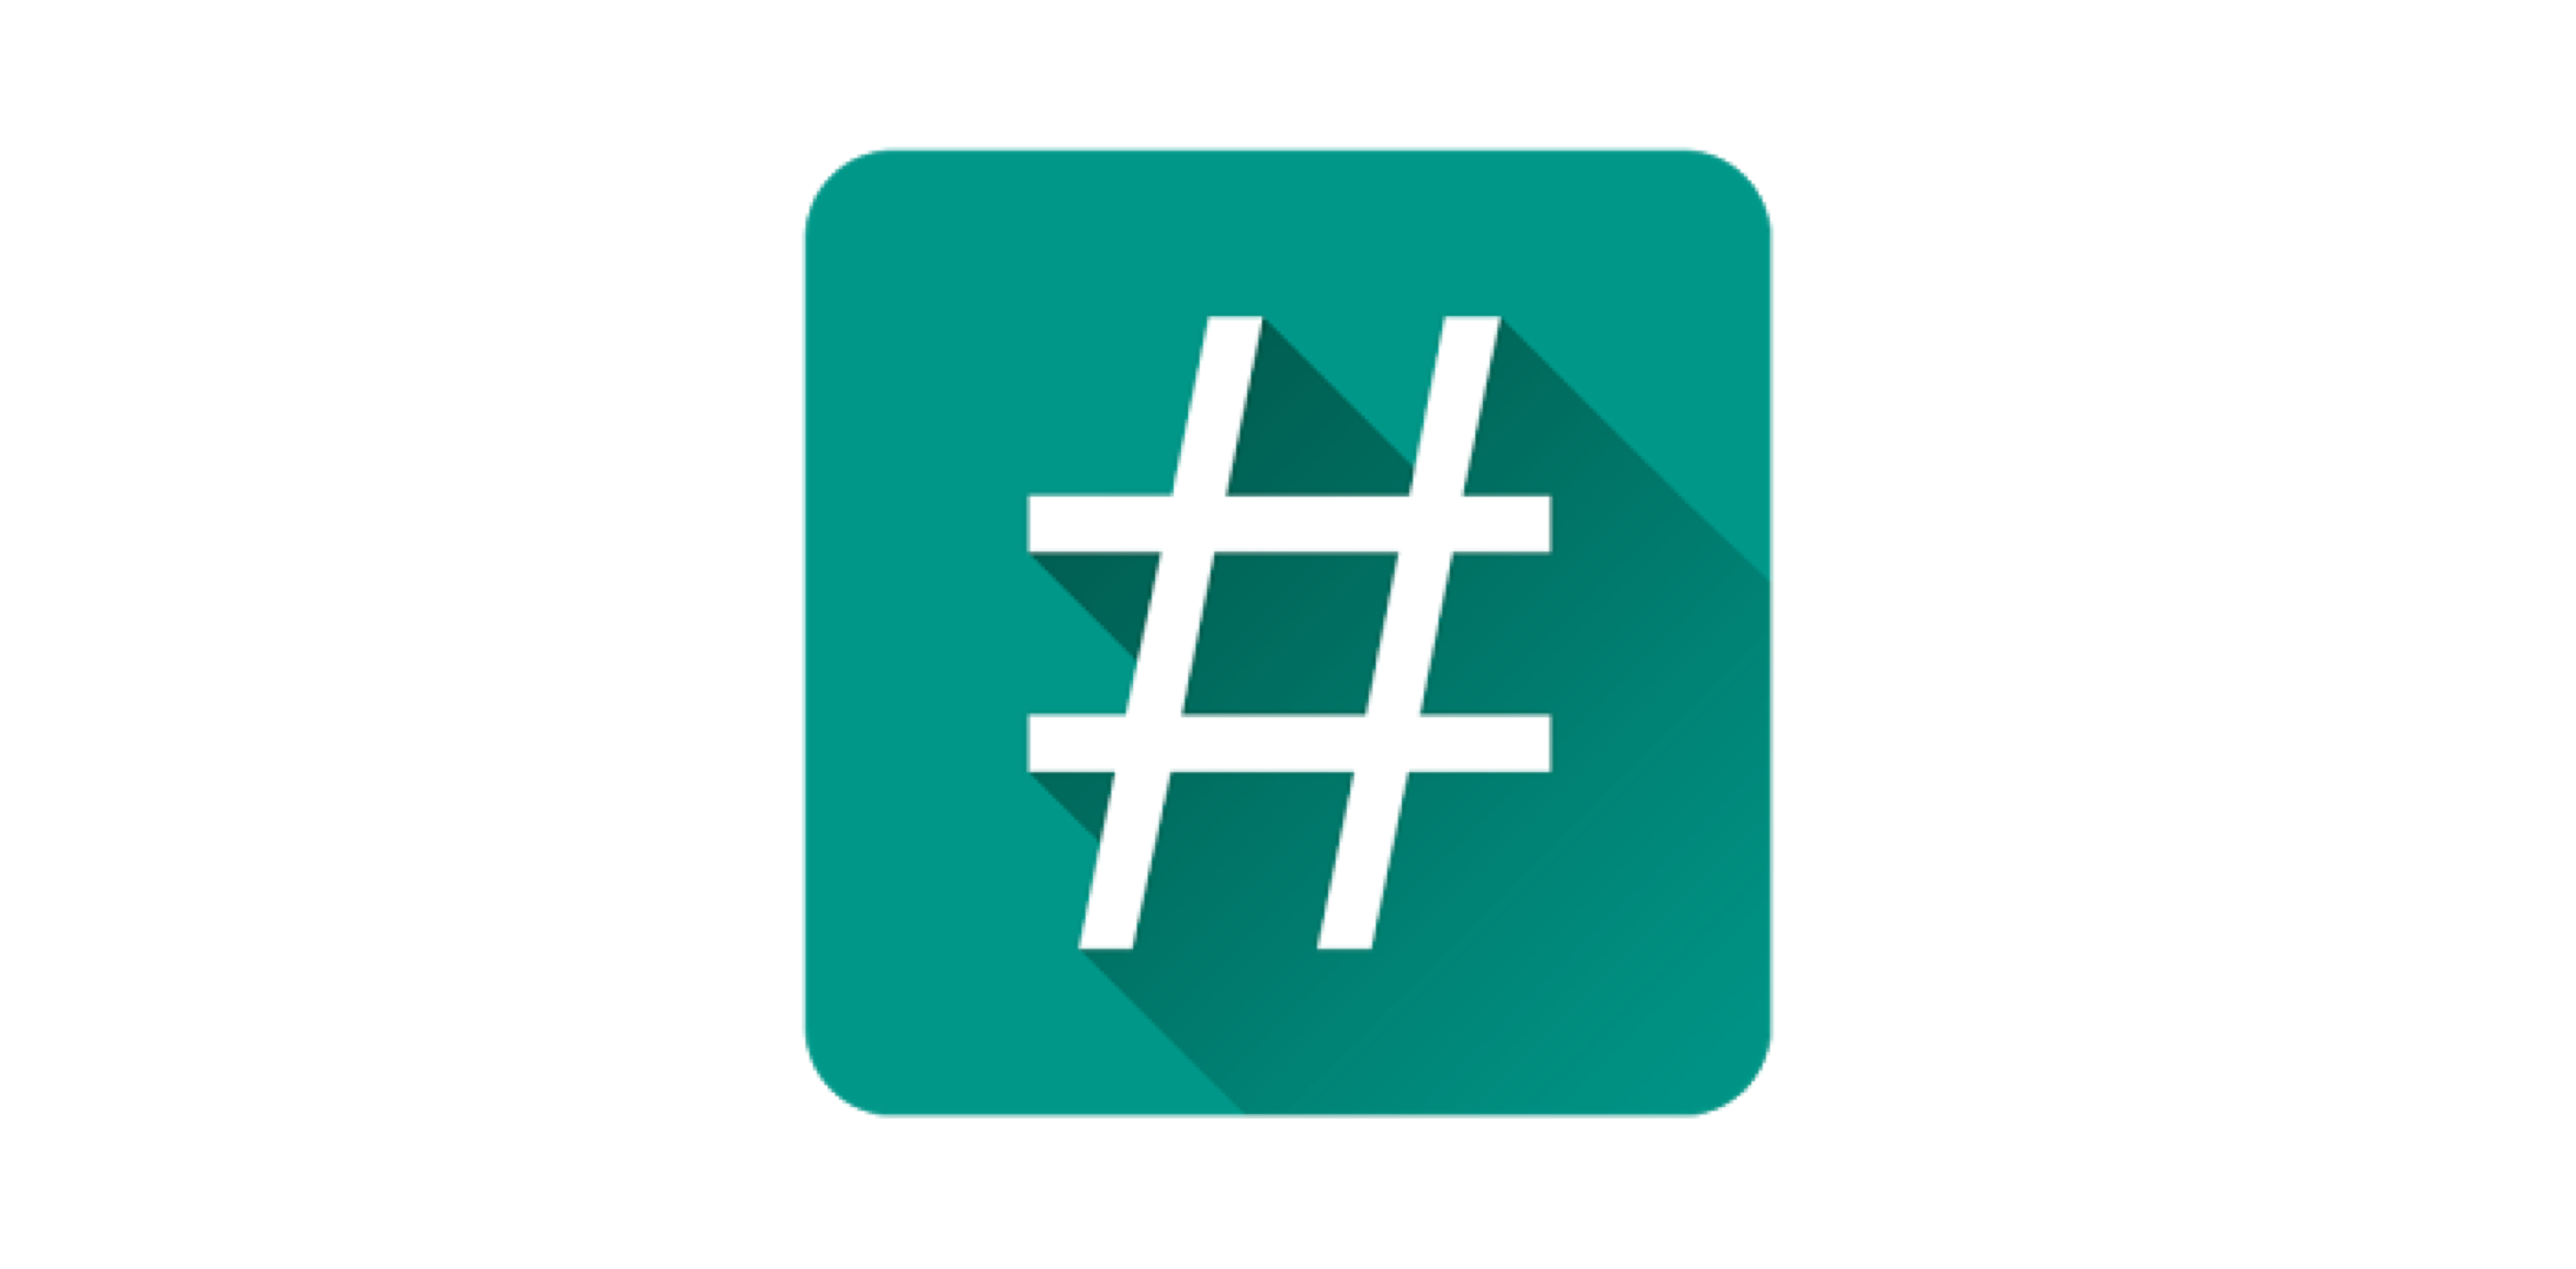 Pin by AIVAnet on AIVAnet   Android apps, Android o, App logo